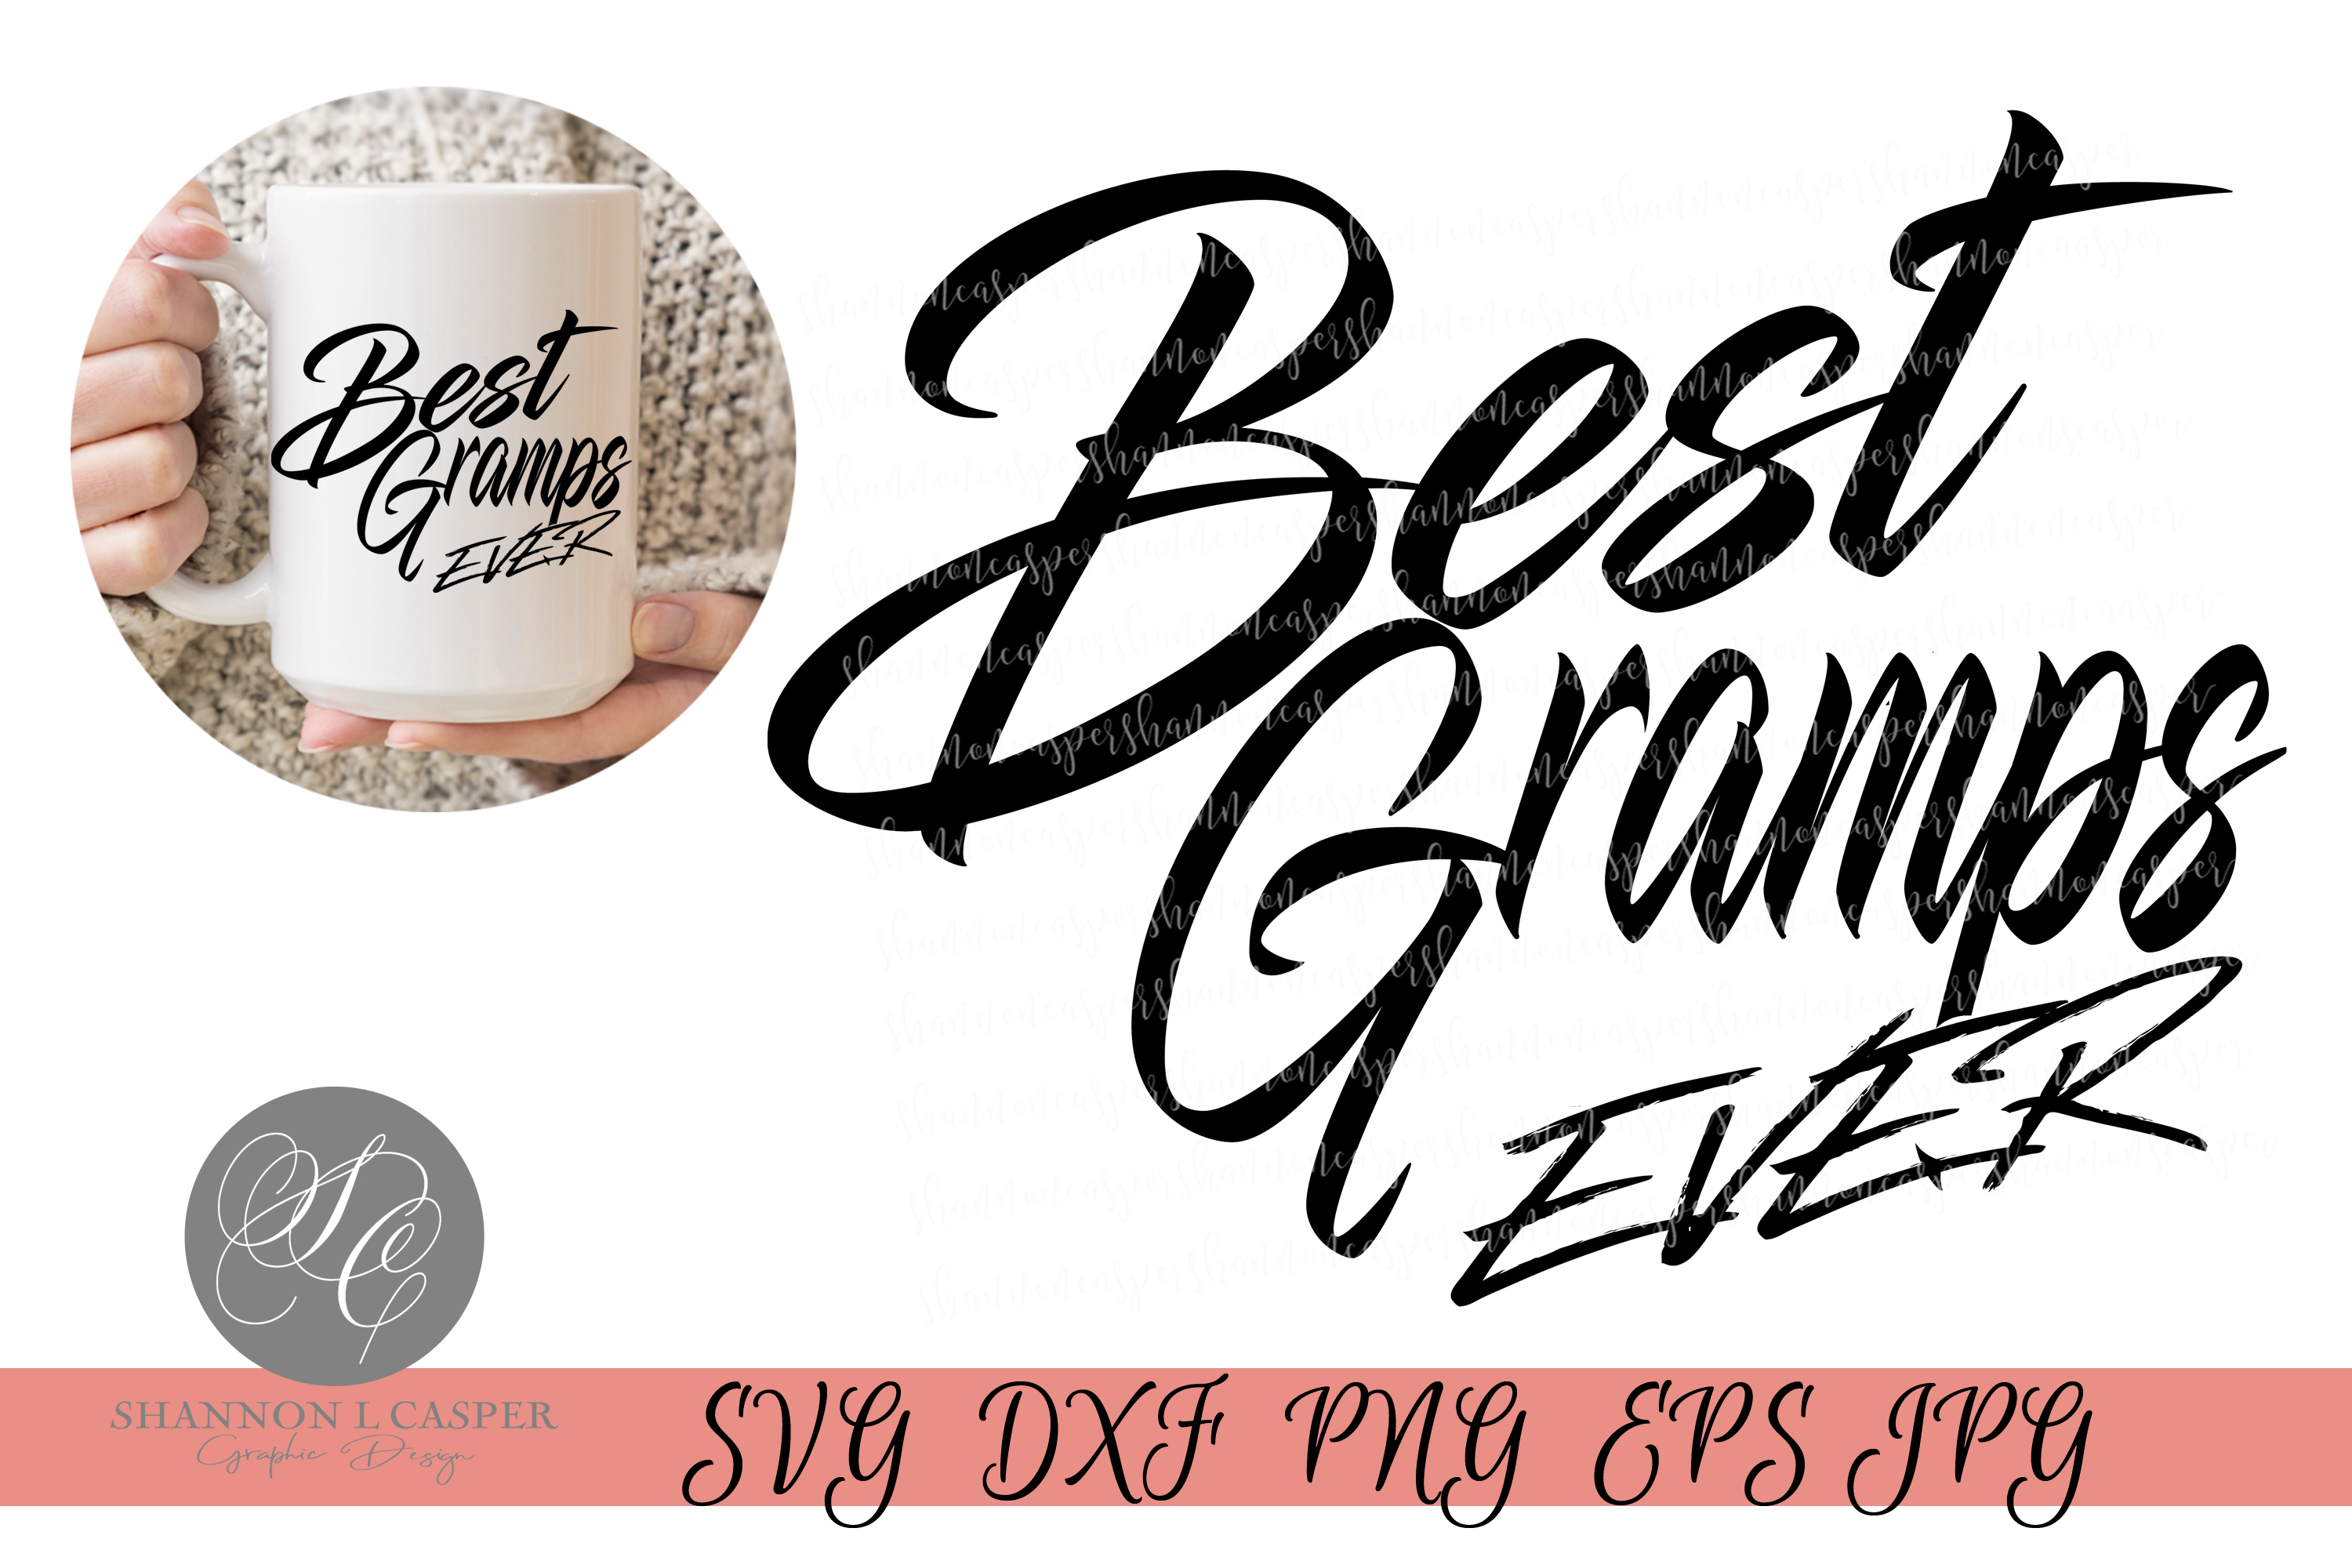 Download Free Best Gramps Ever Graphic By Shannon Casper Creative Fabrica for Cricut Explore, Silhouette and other cutting machines.